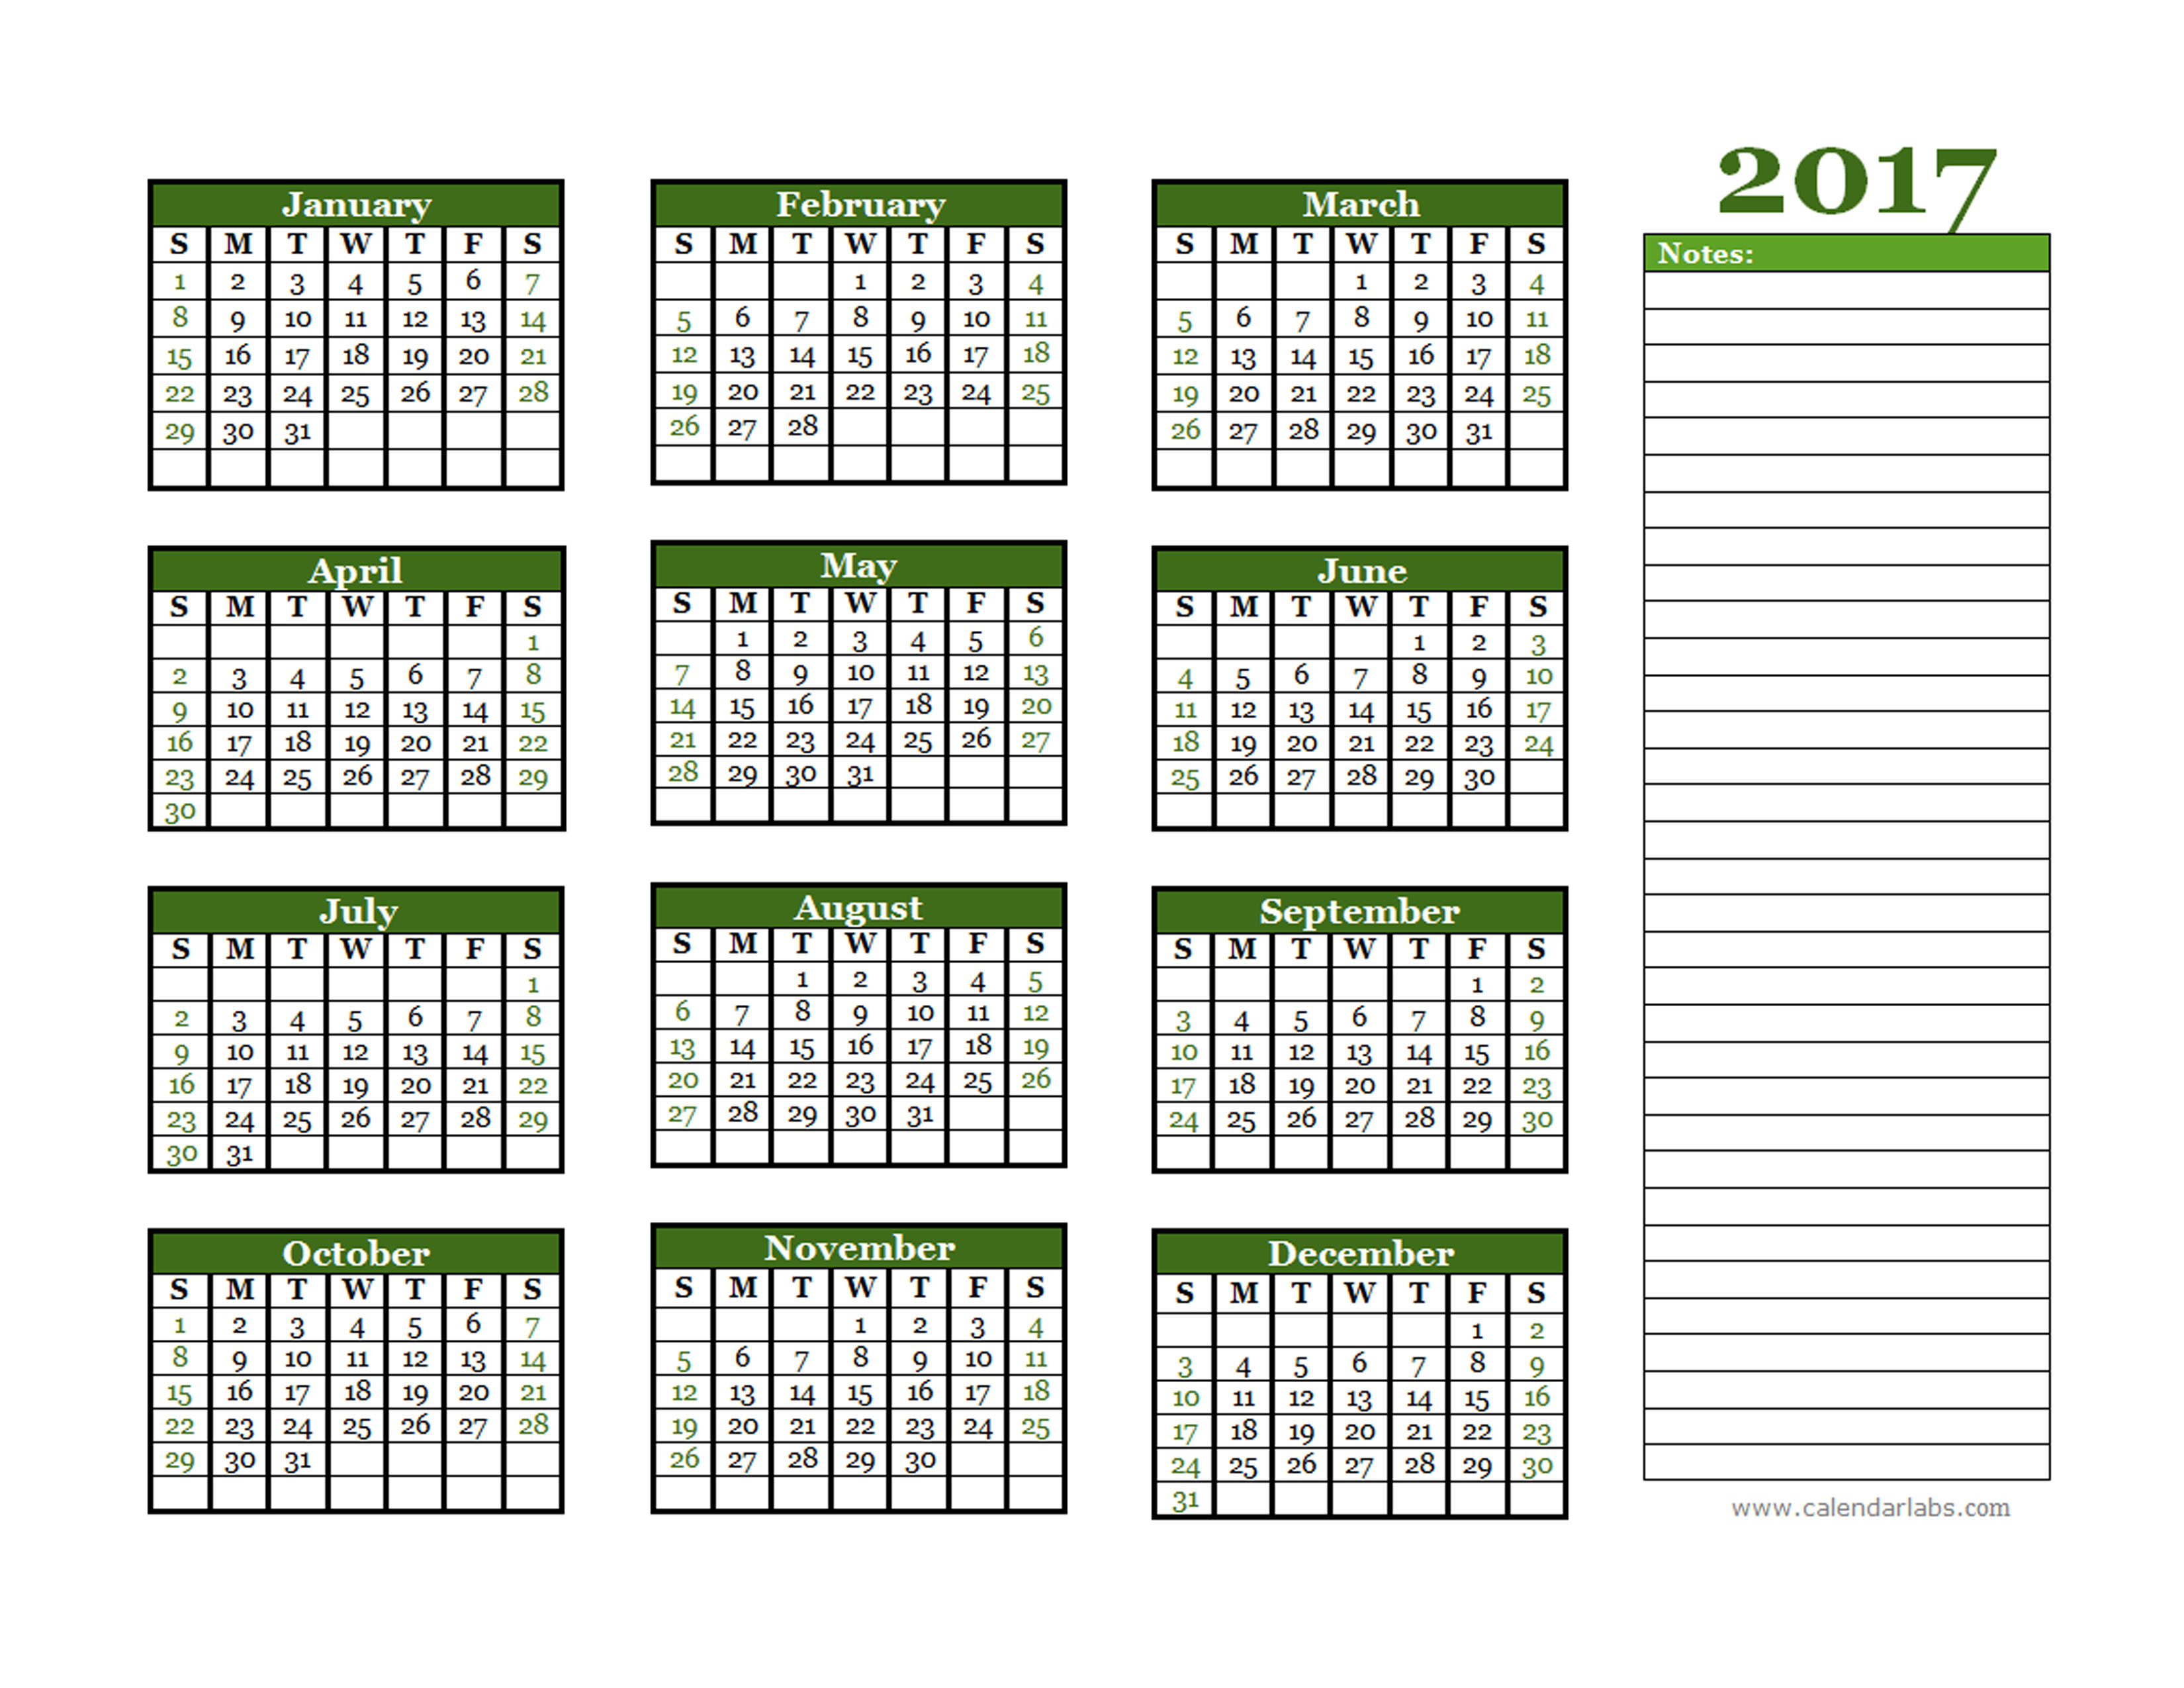 2017 Yearly Calendar With Blank Notes - Free Printable Templates